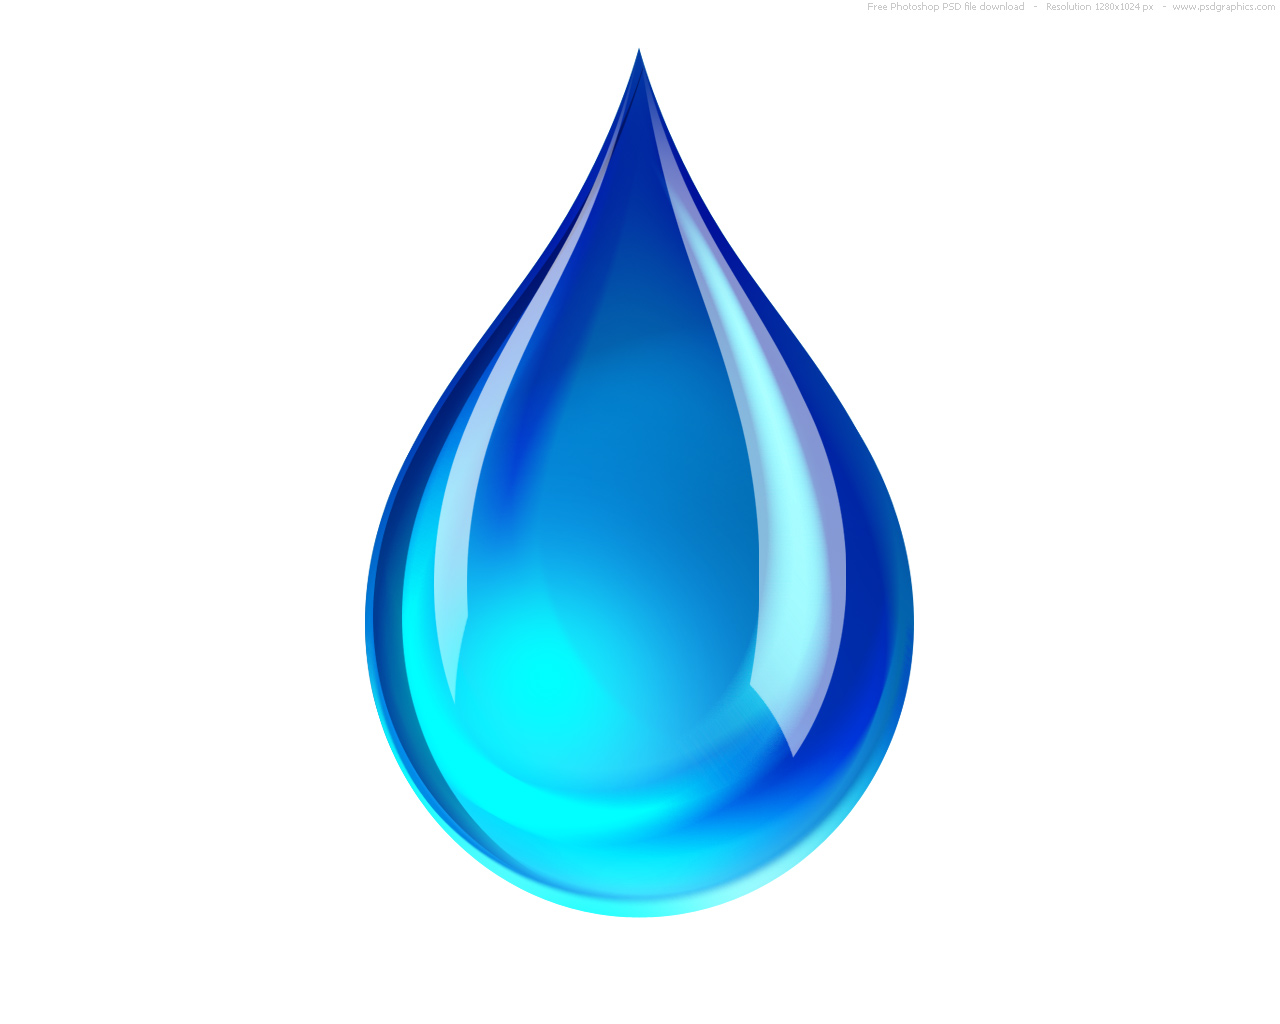 Water Drops clipart #9, Download drawings